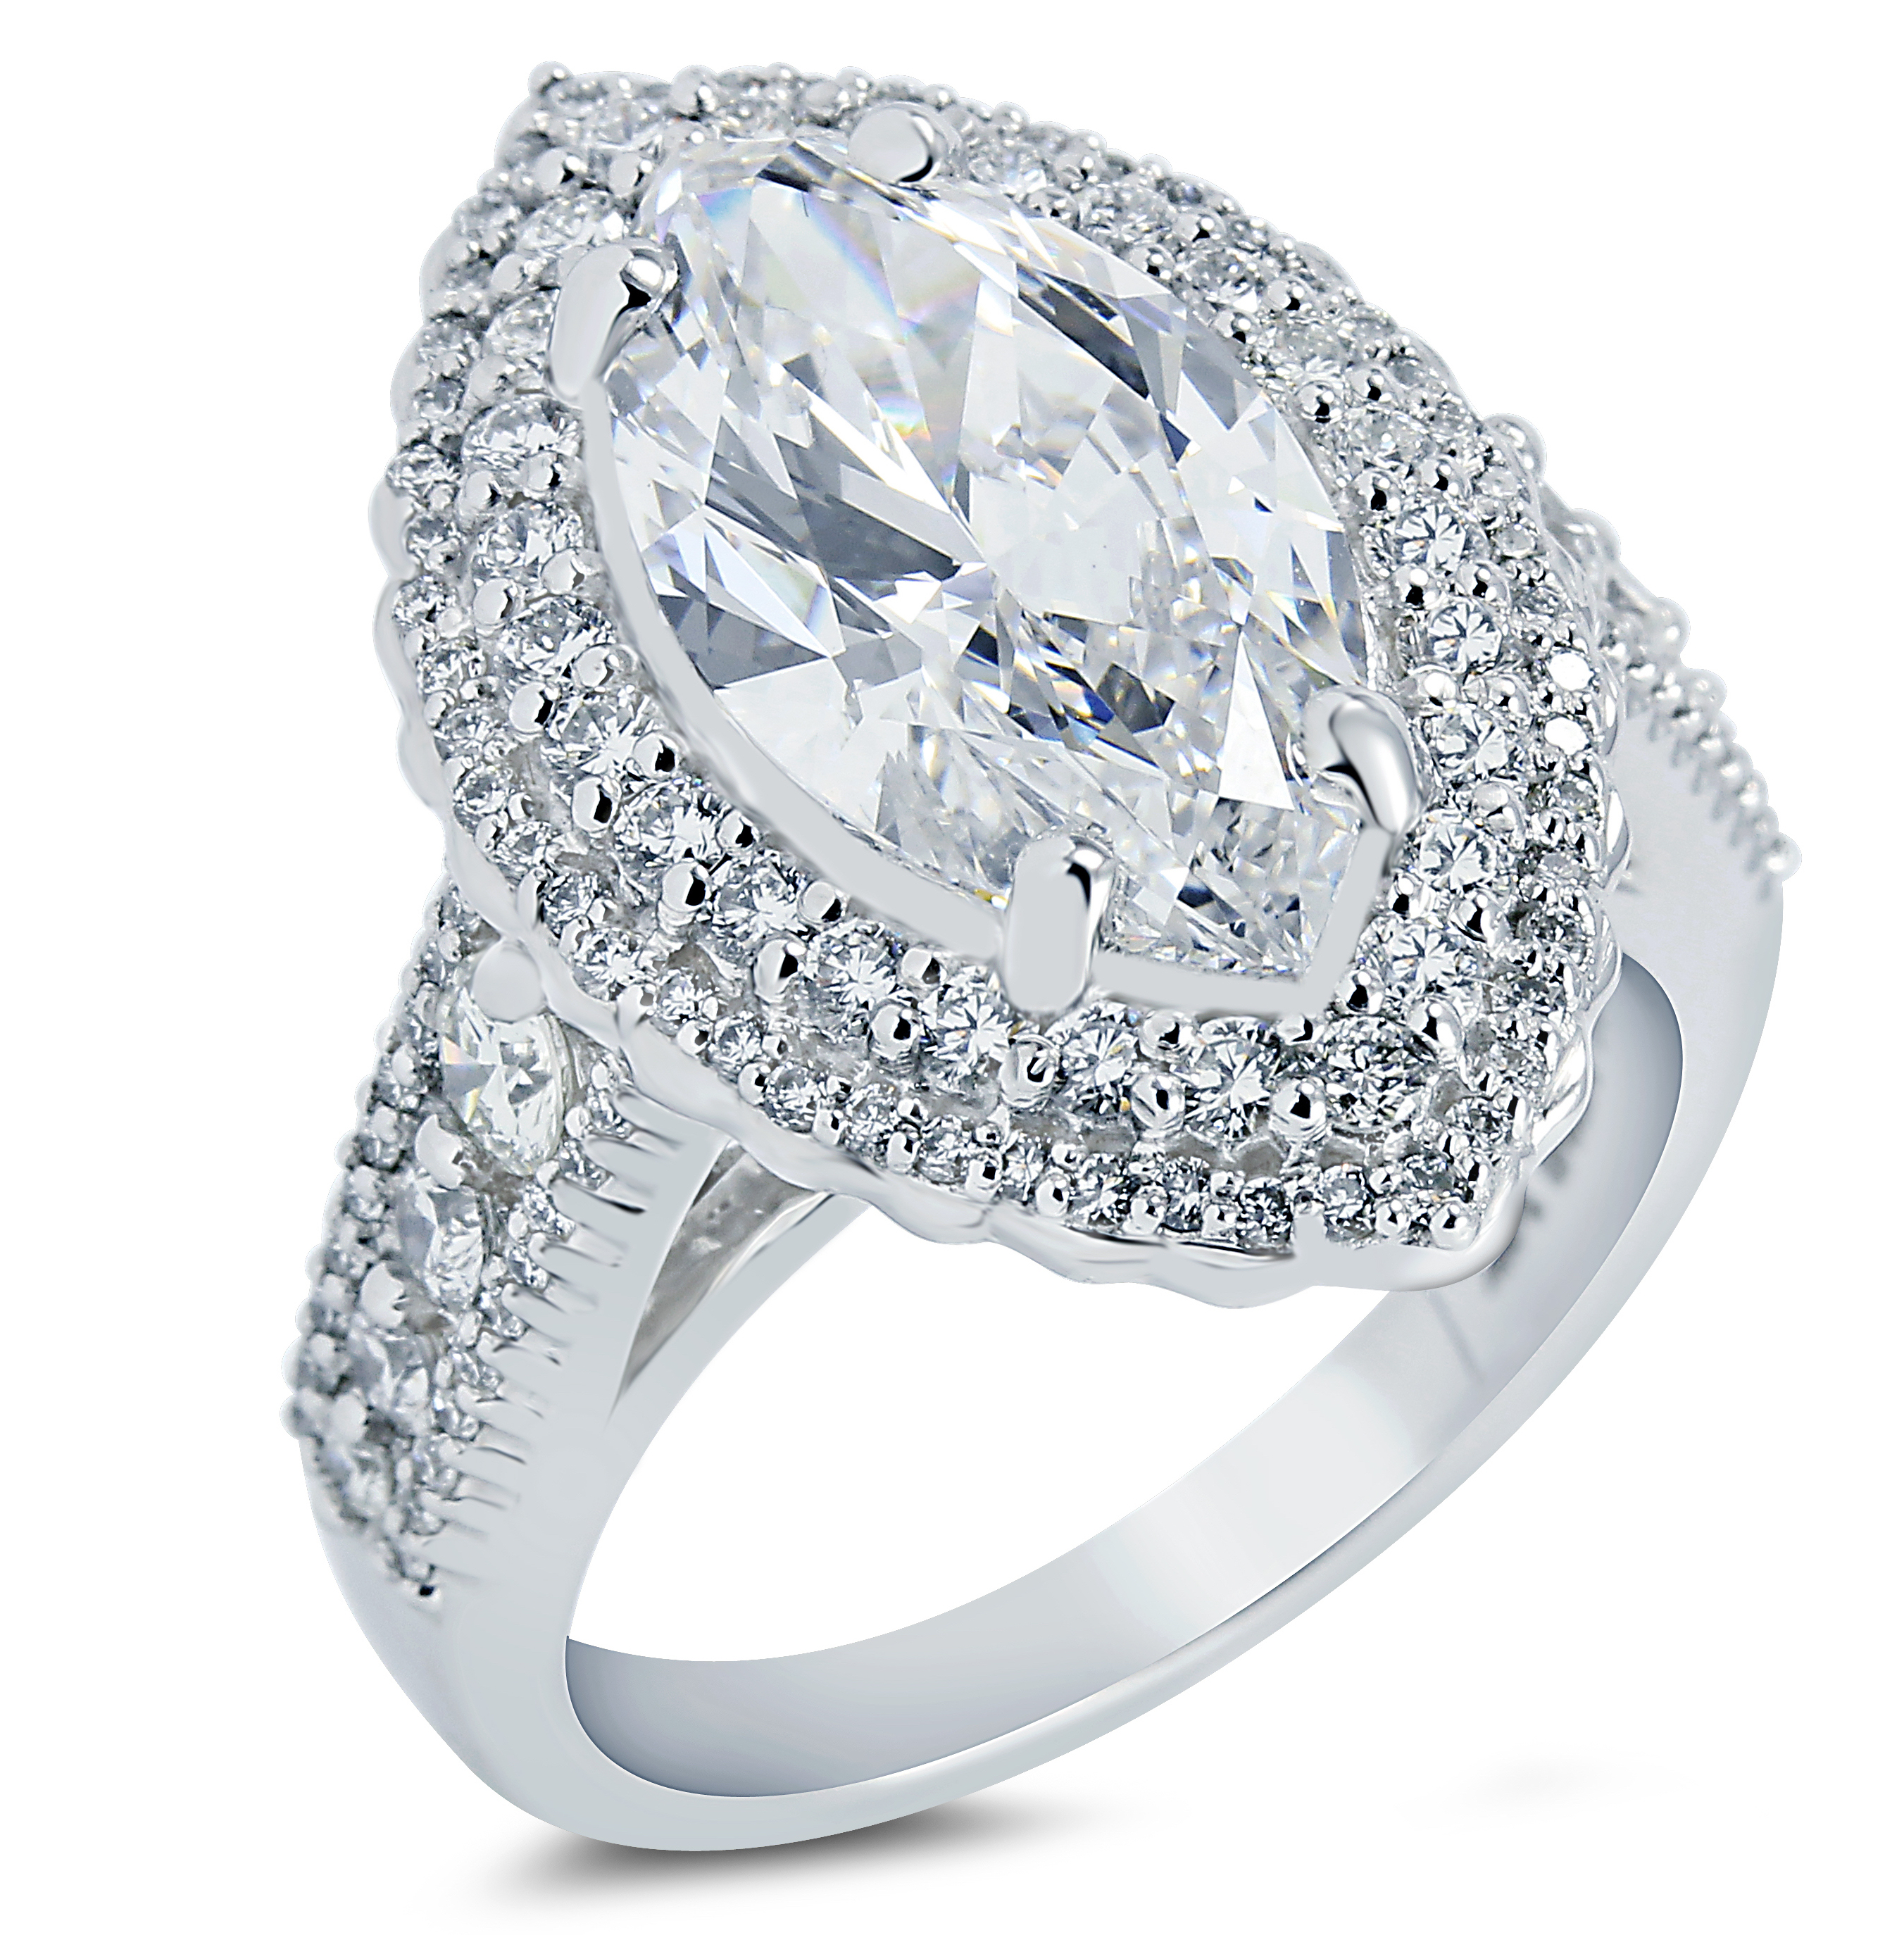 Malakan marquise diamond engagement ring | JCK On Your Market